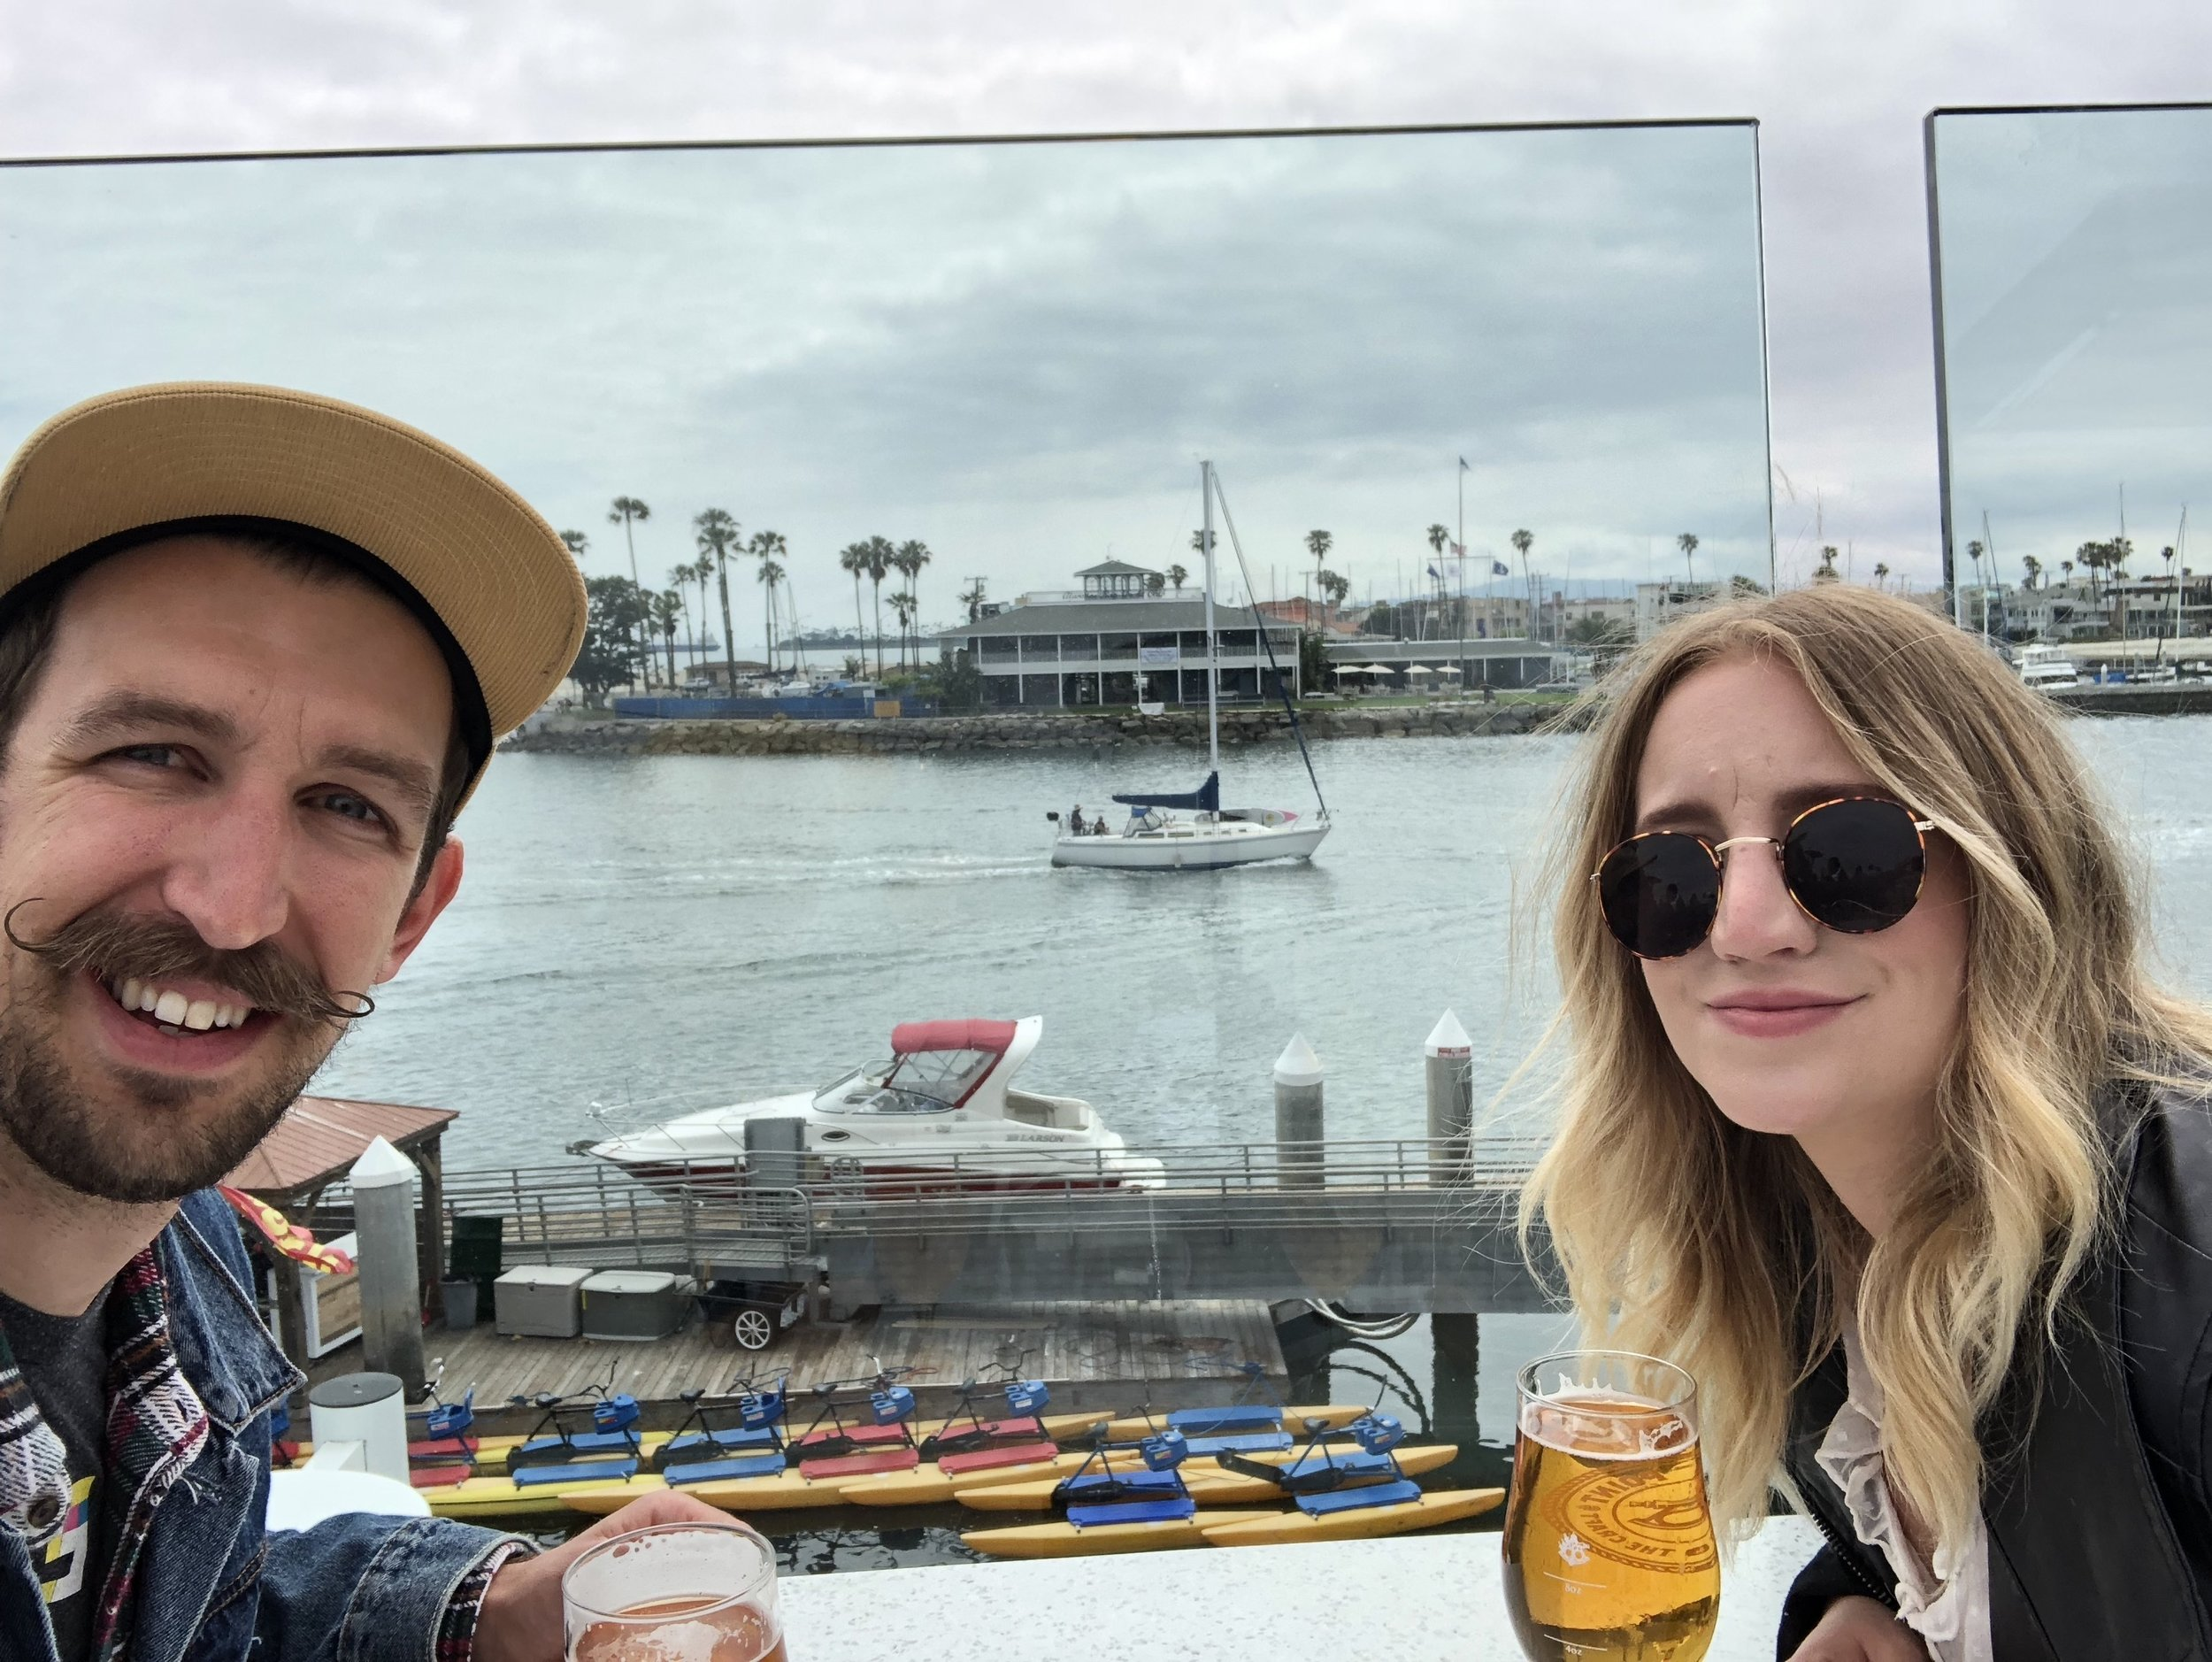 She hates this photo - Long Beach, CA - Summer 2019